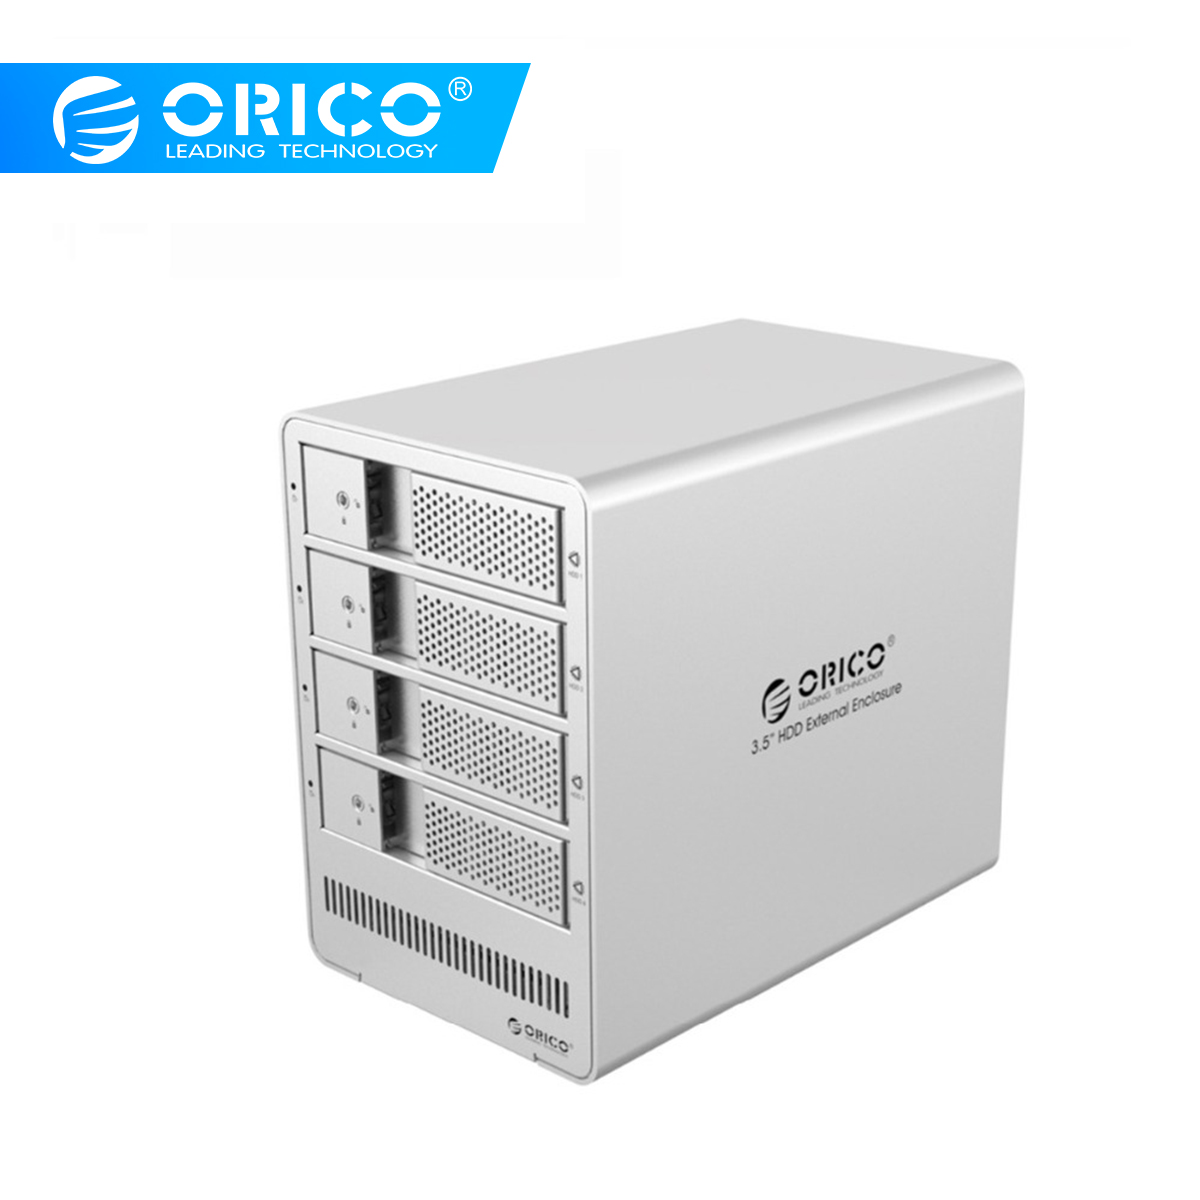 ORICO Tool Free 4 Bay 3 5 SATA Drive Enclosure HDD Case Aluminum Docking Station 5Gbps